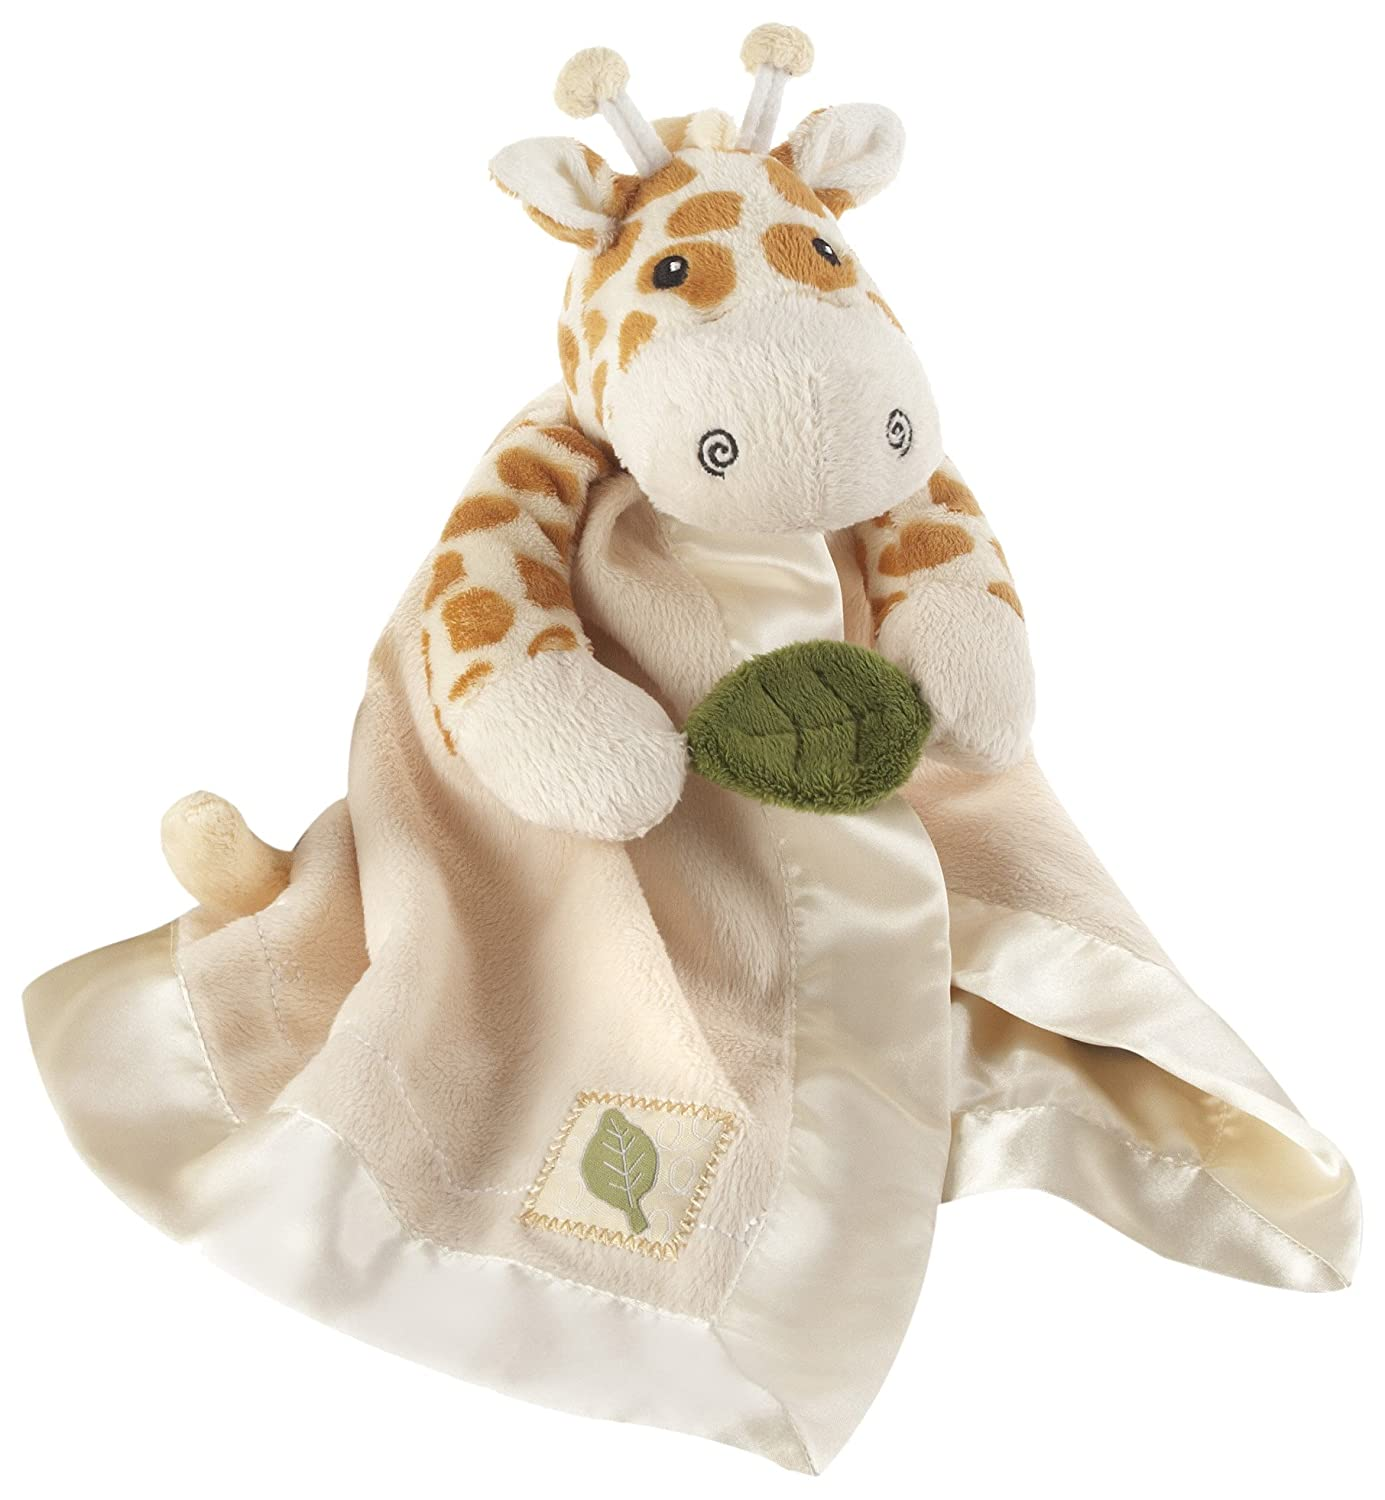 Baby Aspen Little Expeditions Plush Rattle Lovie with Crinkle Leaf, Jakka The Giraffe